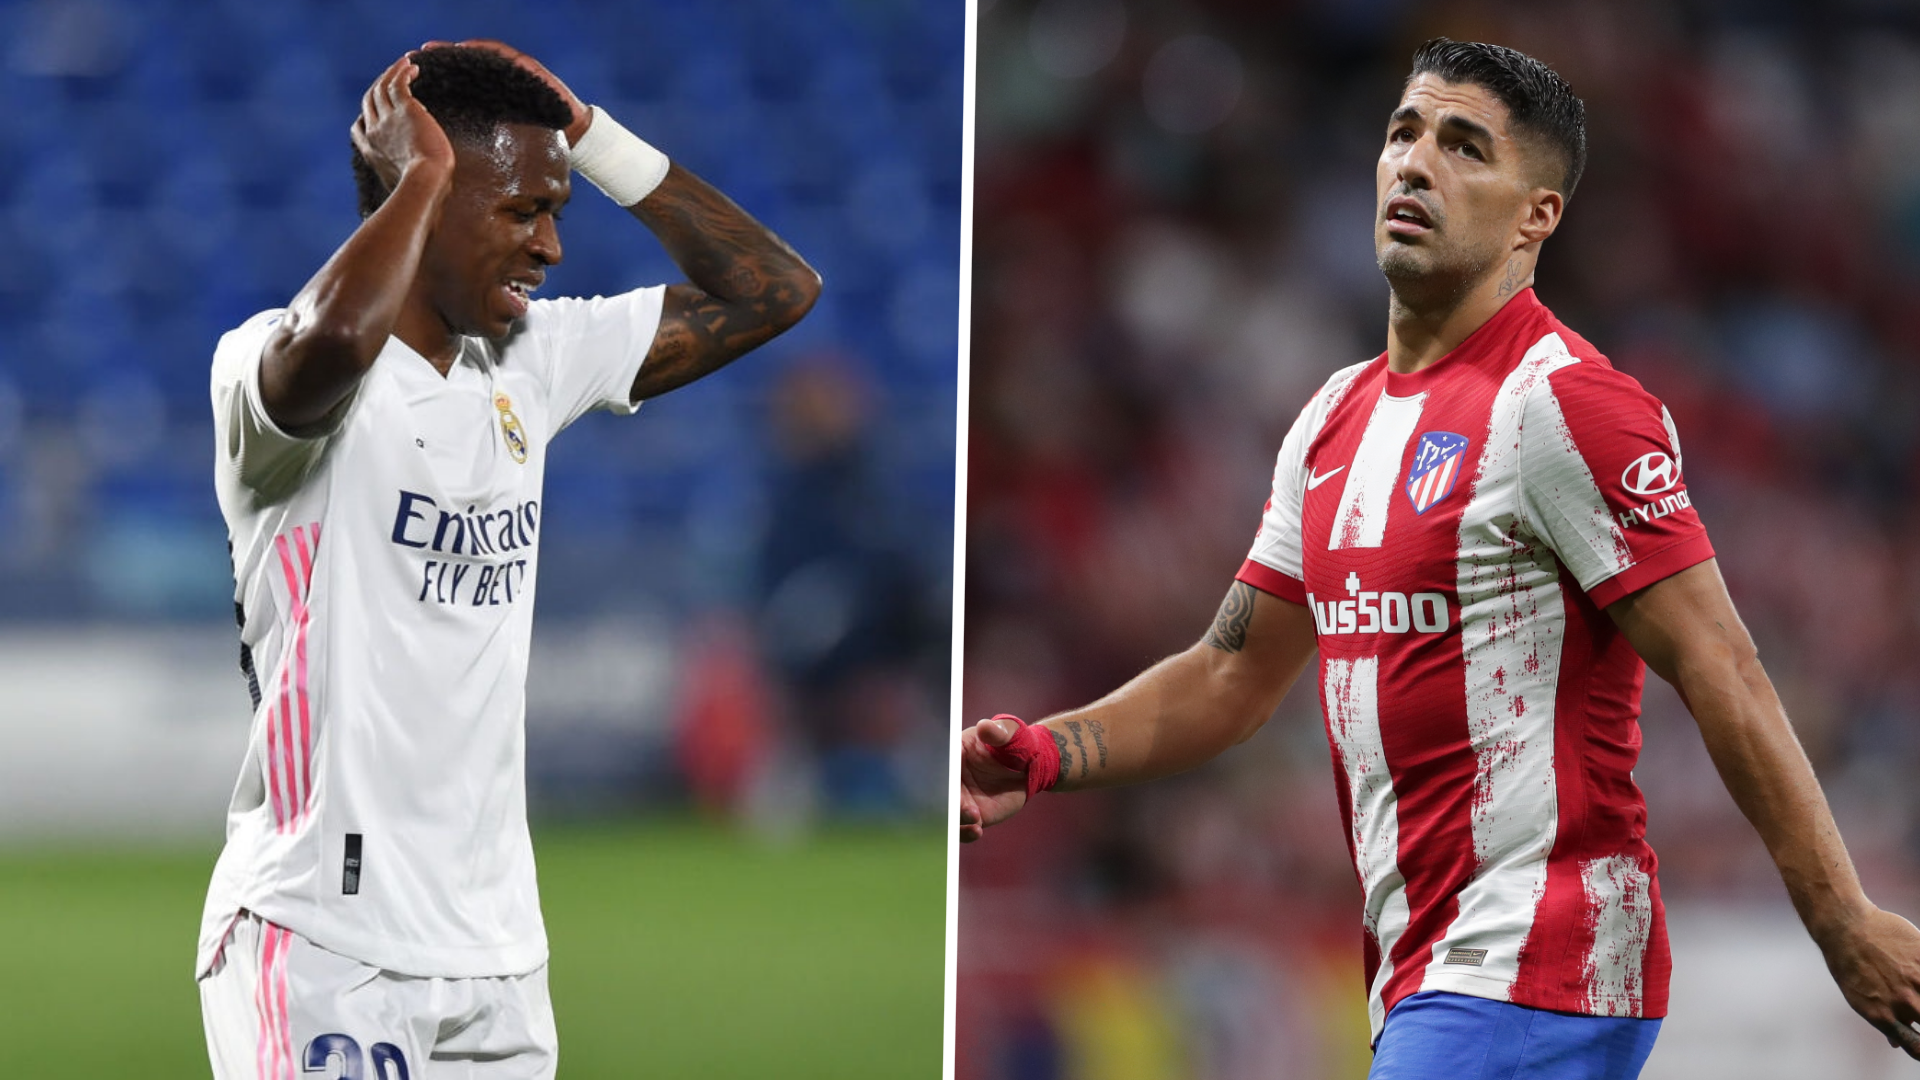 Real Madrid & Atletico games postponed due to South American World Cup qualifiers